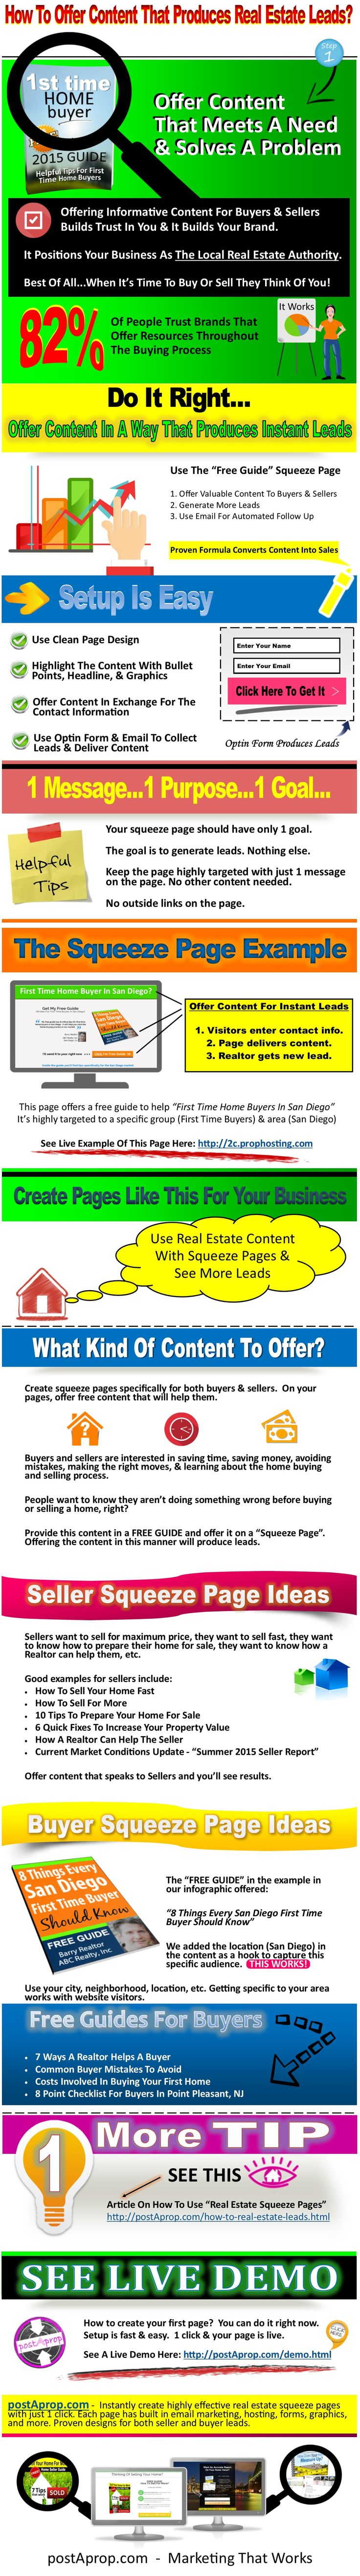 http://postAprop.com - Create unlimited realtor squeeze pages, landing pages, lead pages, & more. #realtor #realtors #realestateagent #realestatemarketing #realtormarketing #realestateleads #realestatelandingpage #realtorlandingpage #realtorsqueezepage #realtorlife #realestatebroker